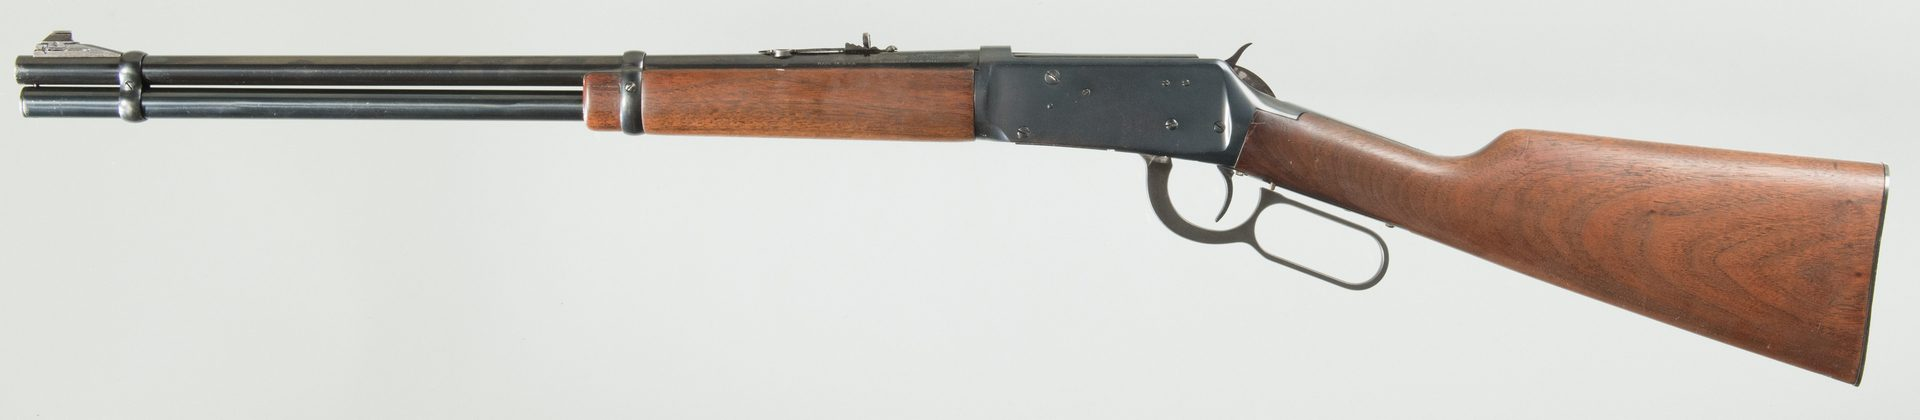 Lot 825: Winchester Model 94, 30-30 Win Lever Action Rifle